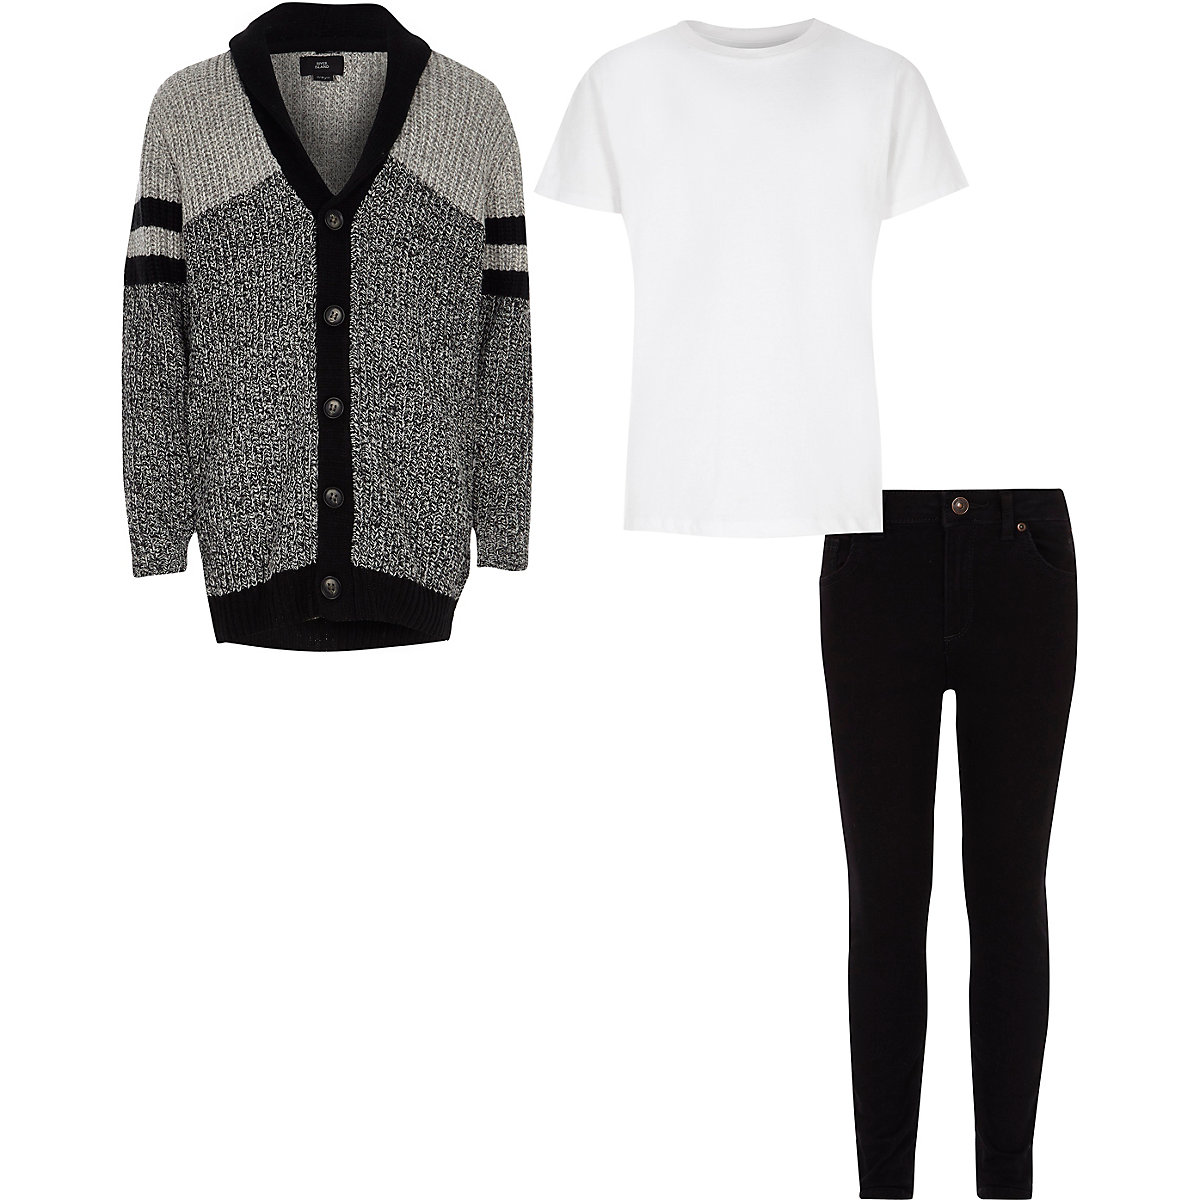 Boys grey cardigan and skinny jeans outfit